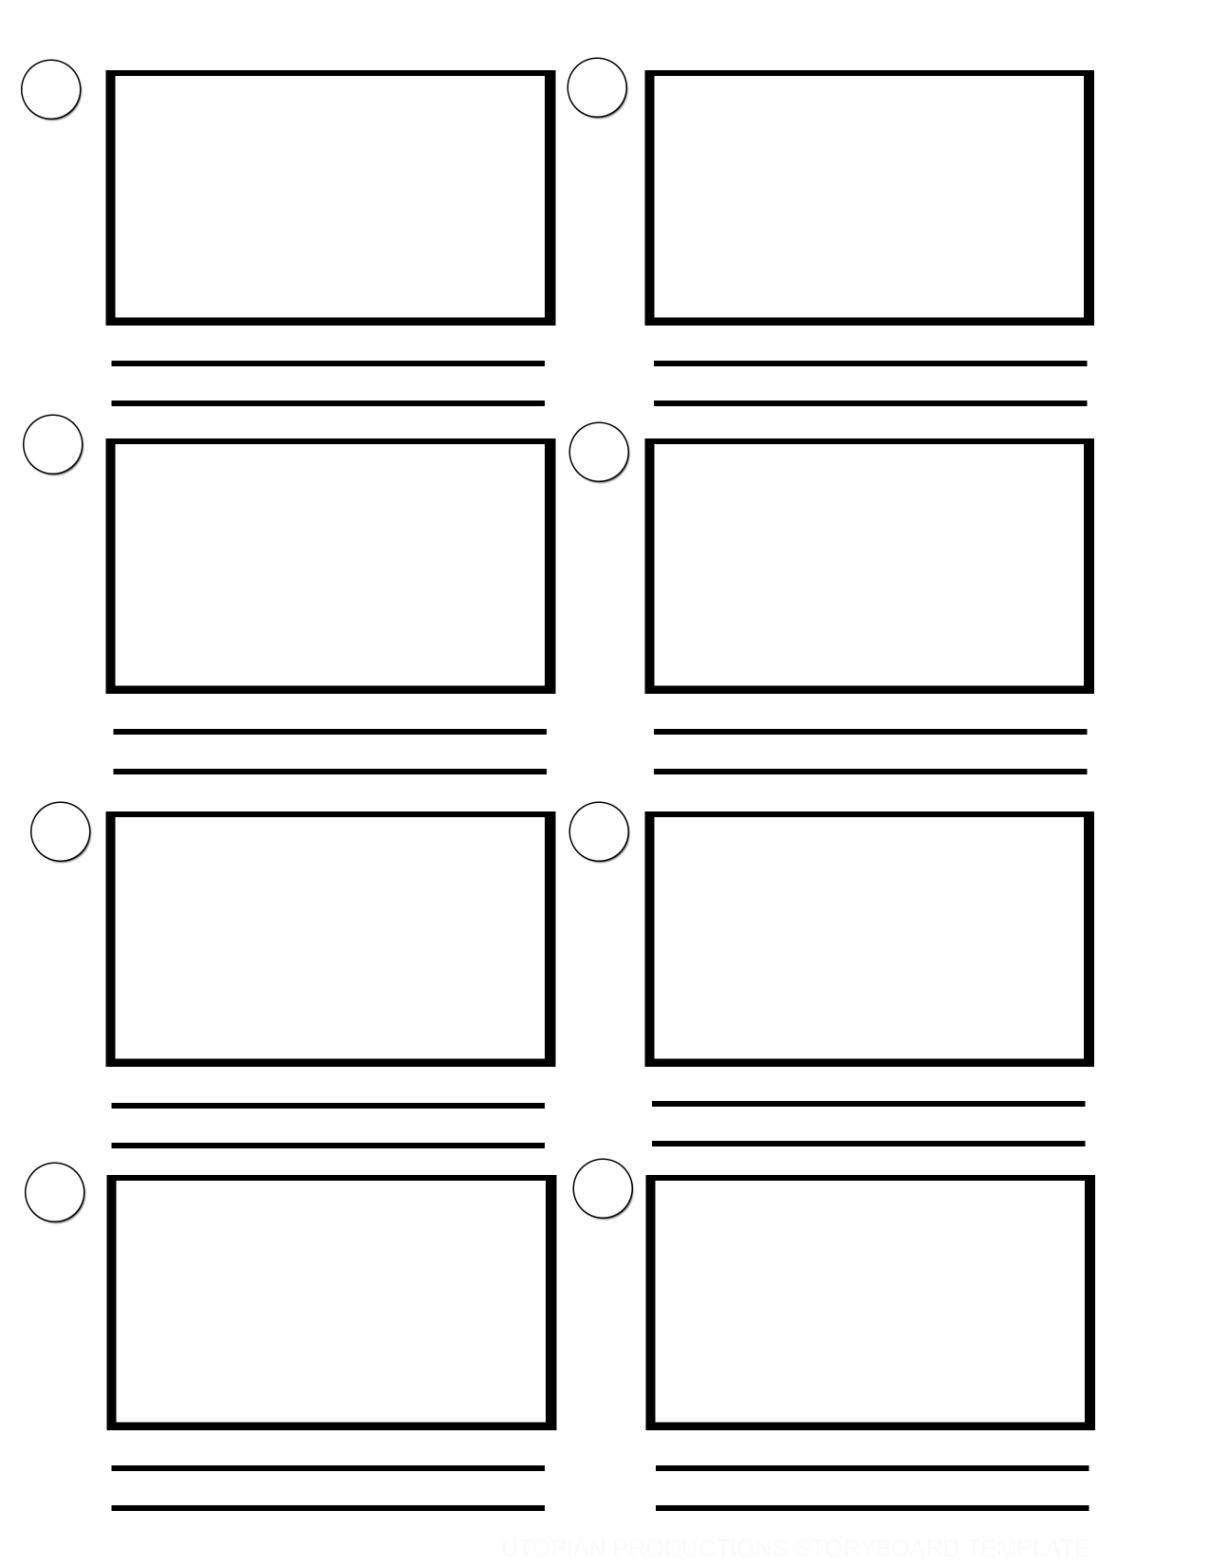 Blackline BLACKLINE Master MASTER 4: Create 4 CREATE a A storyboard STORYBOARD Print this Print out this and out give and your give students your students a copy on a which copy to on draw which